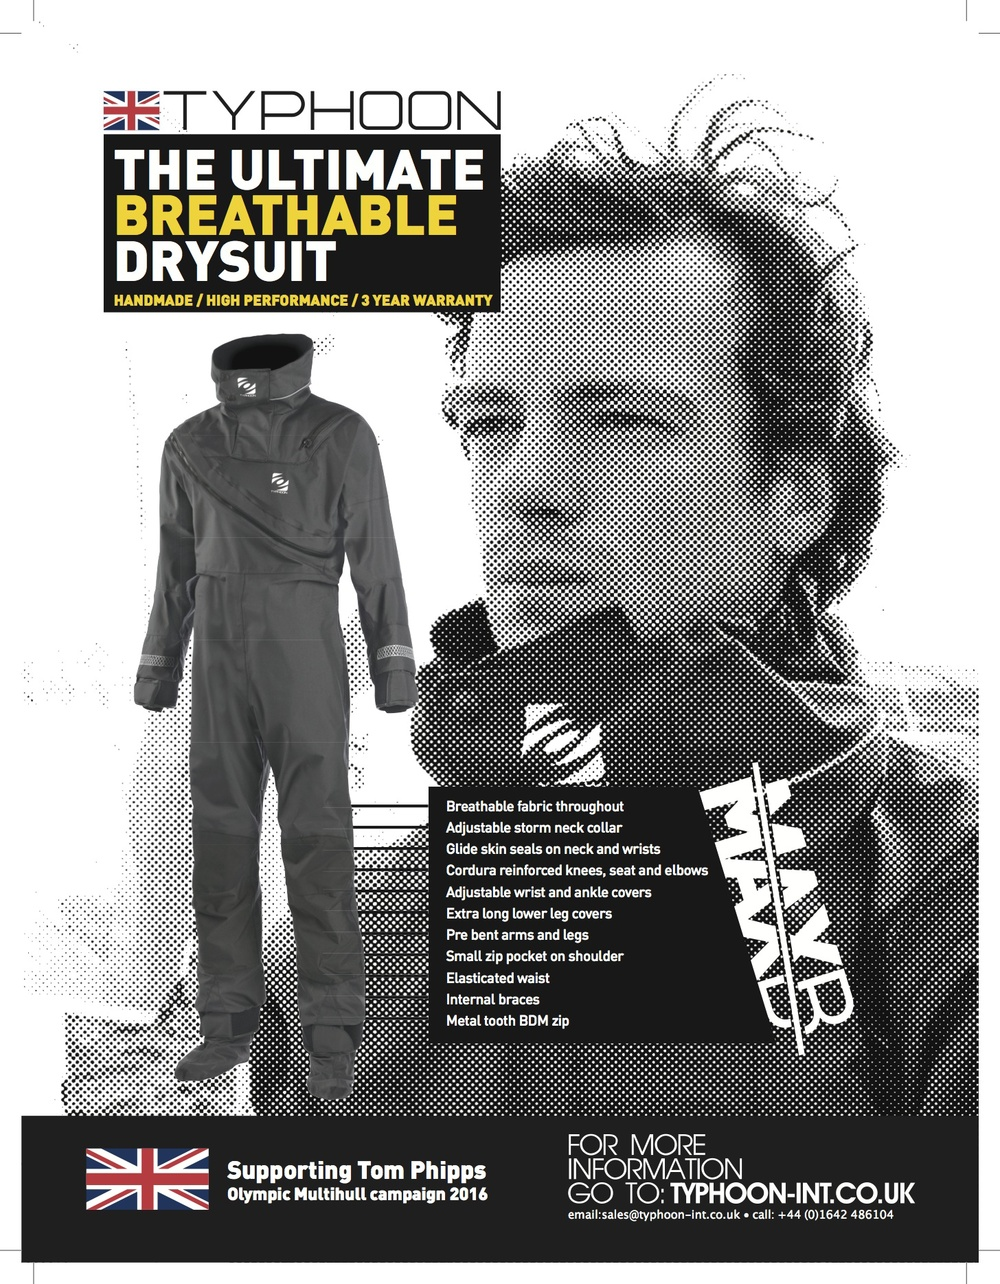 4327-Y+Y Surface drysuit ad.jpg